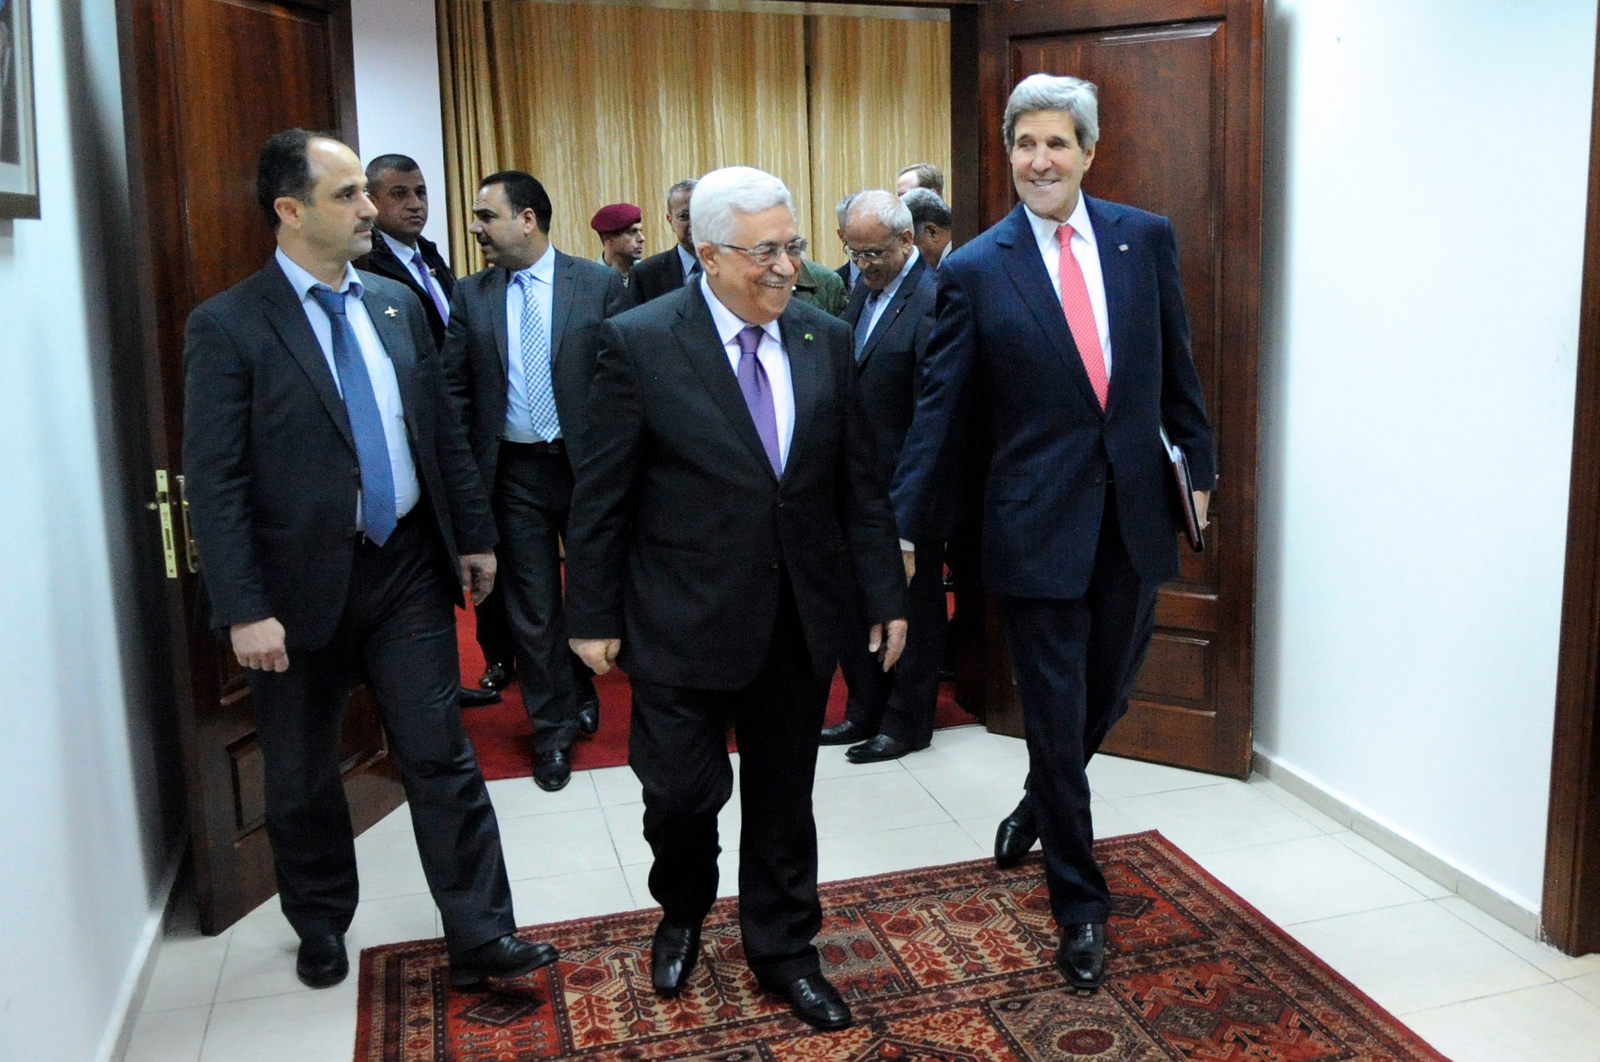 Palestinian Authority President Mahmoud Abbas welcomes U.S. Secretary of State John Kerry in the West Bank. (State Department Photo/Public Domain)